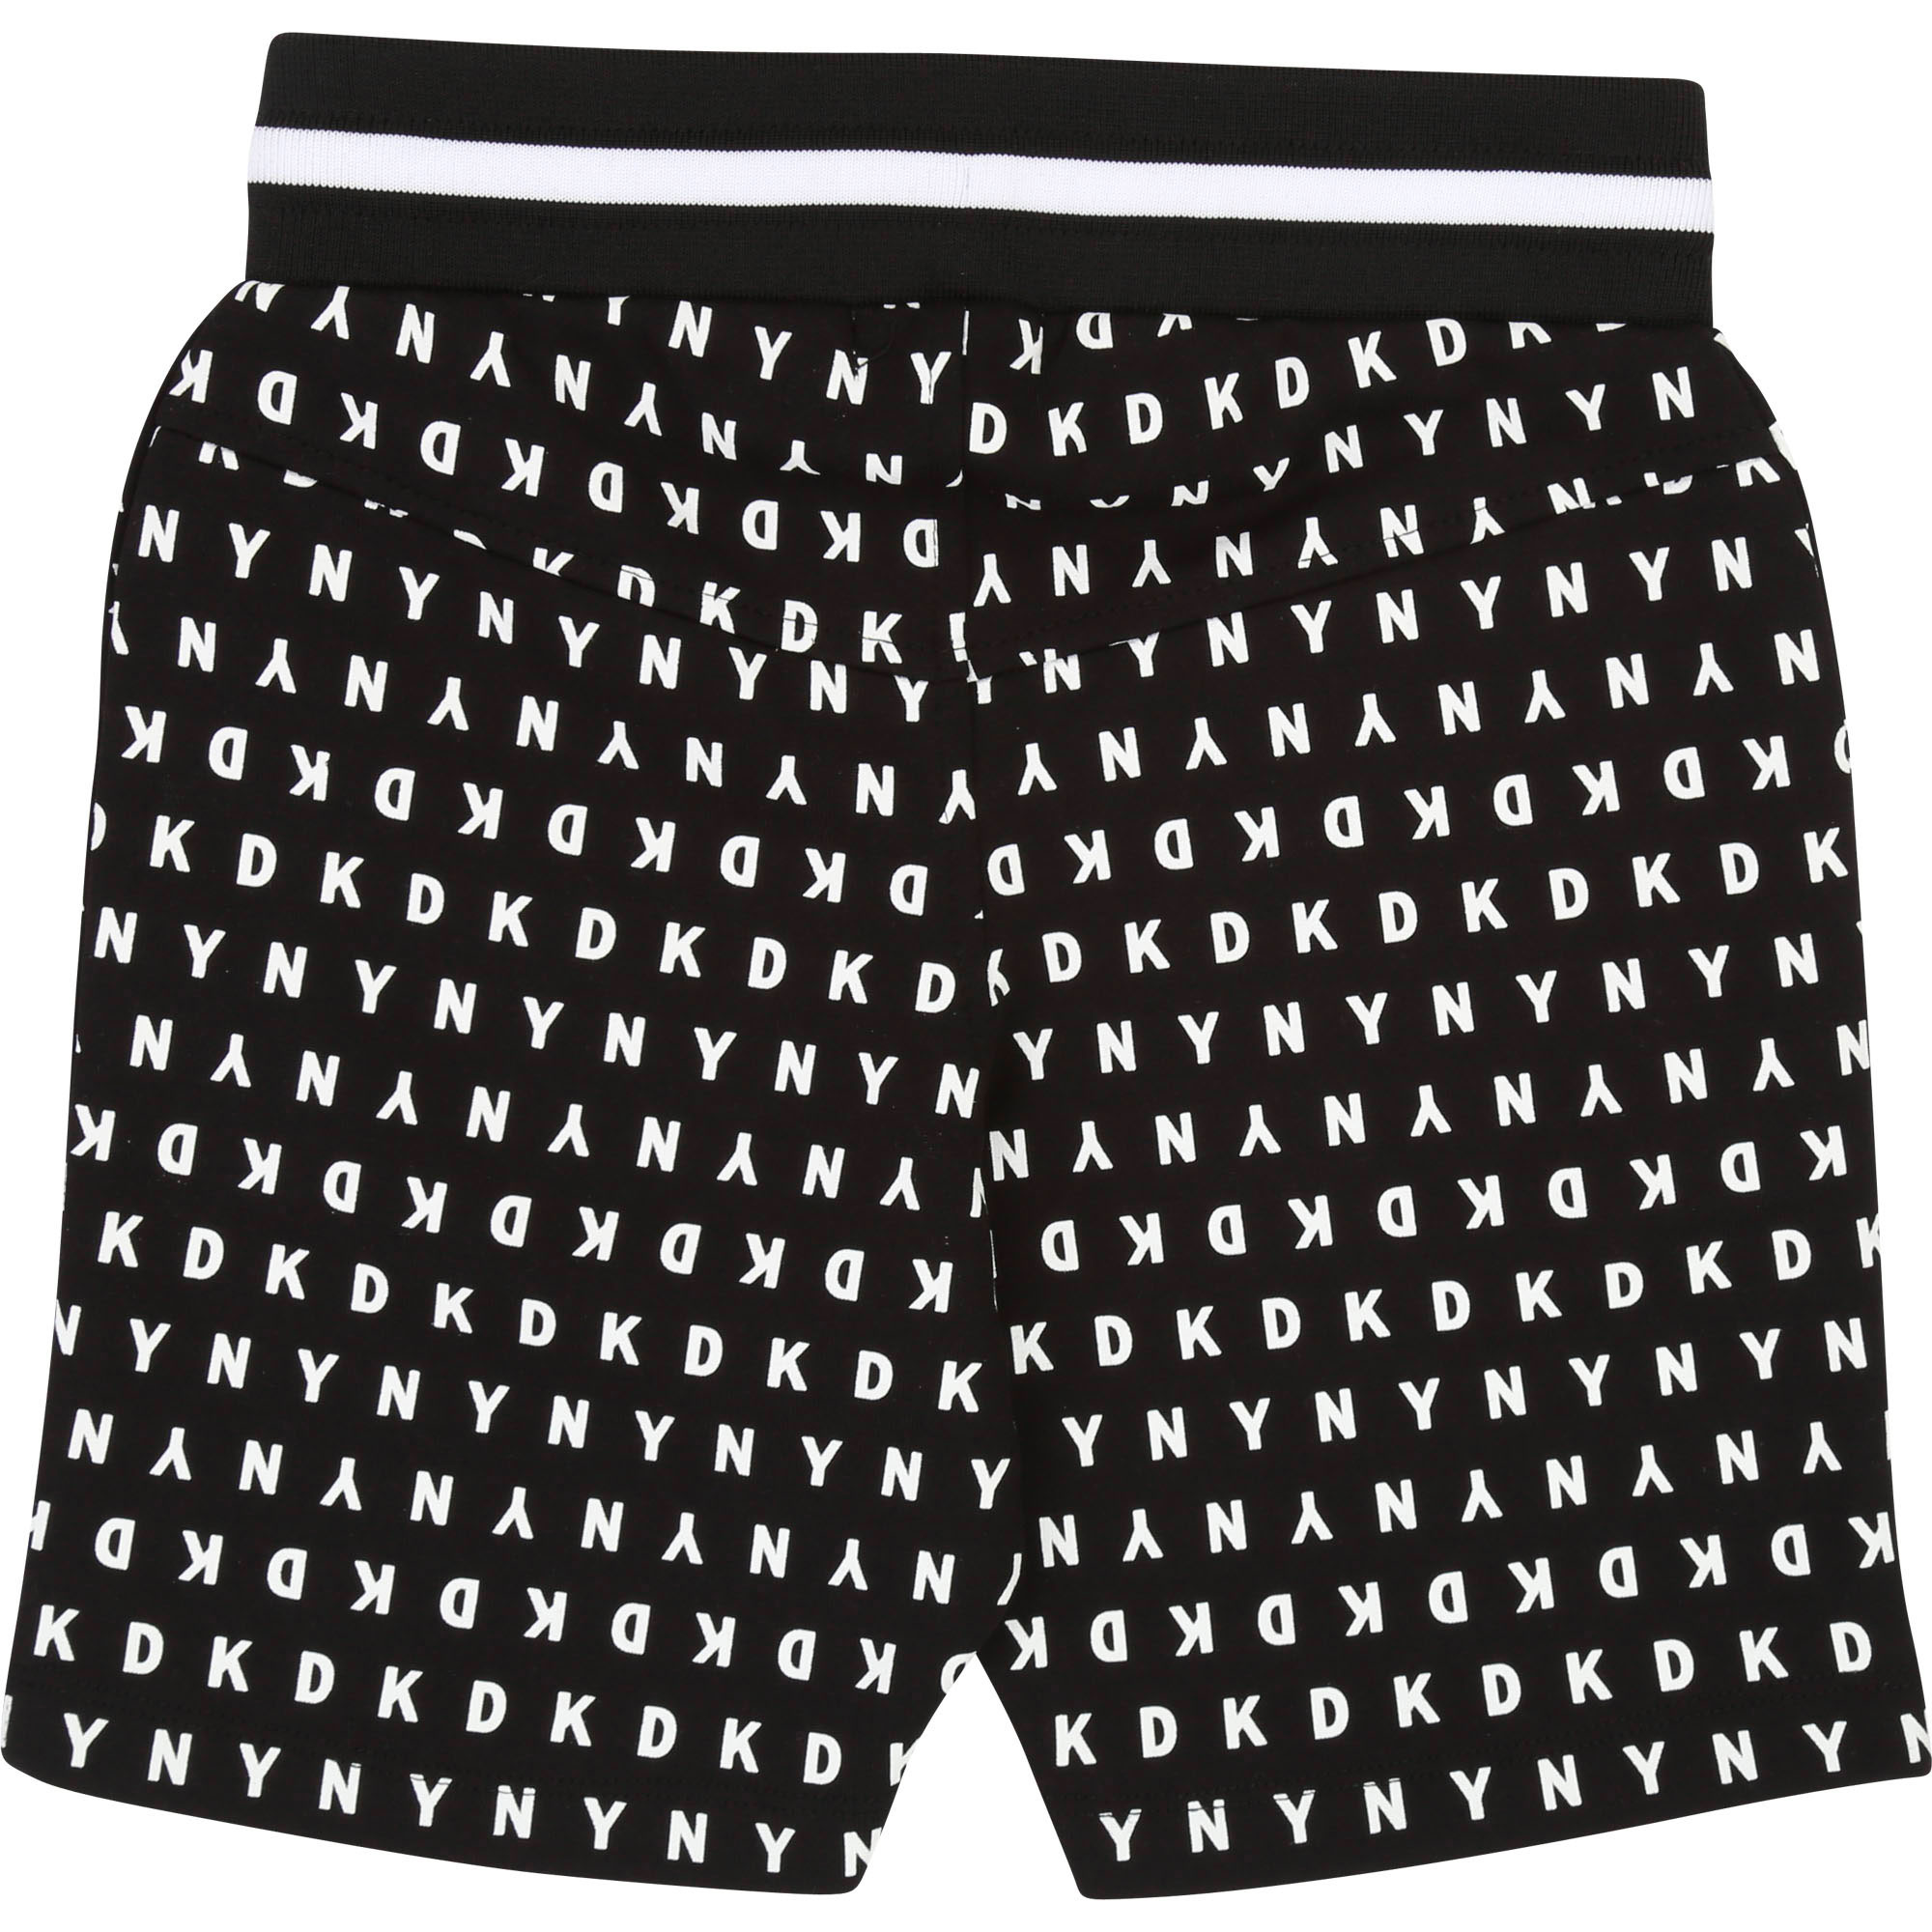 All-over patterned Bermudas DKNY for BOY